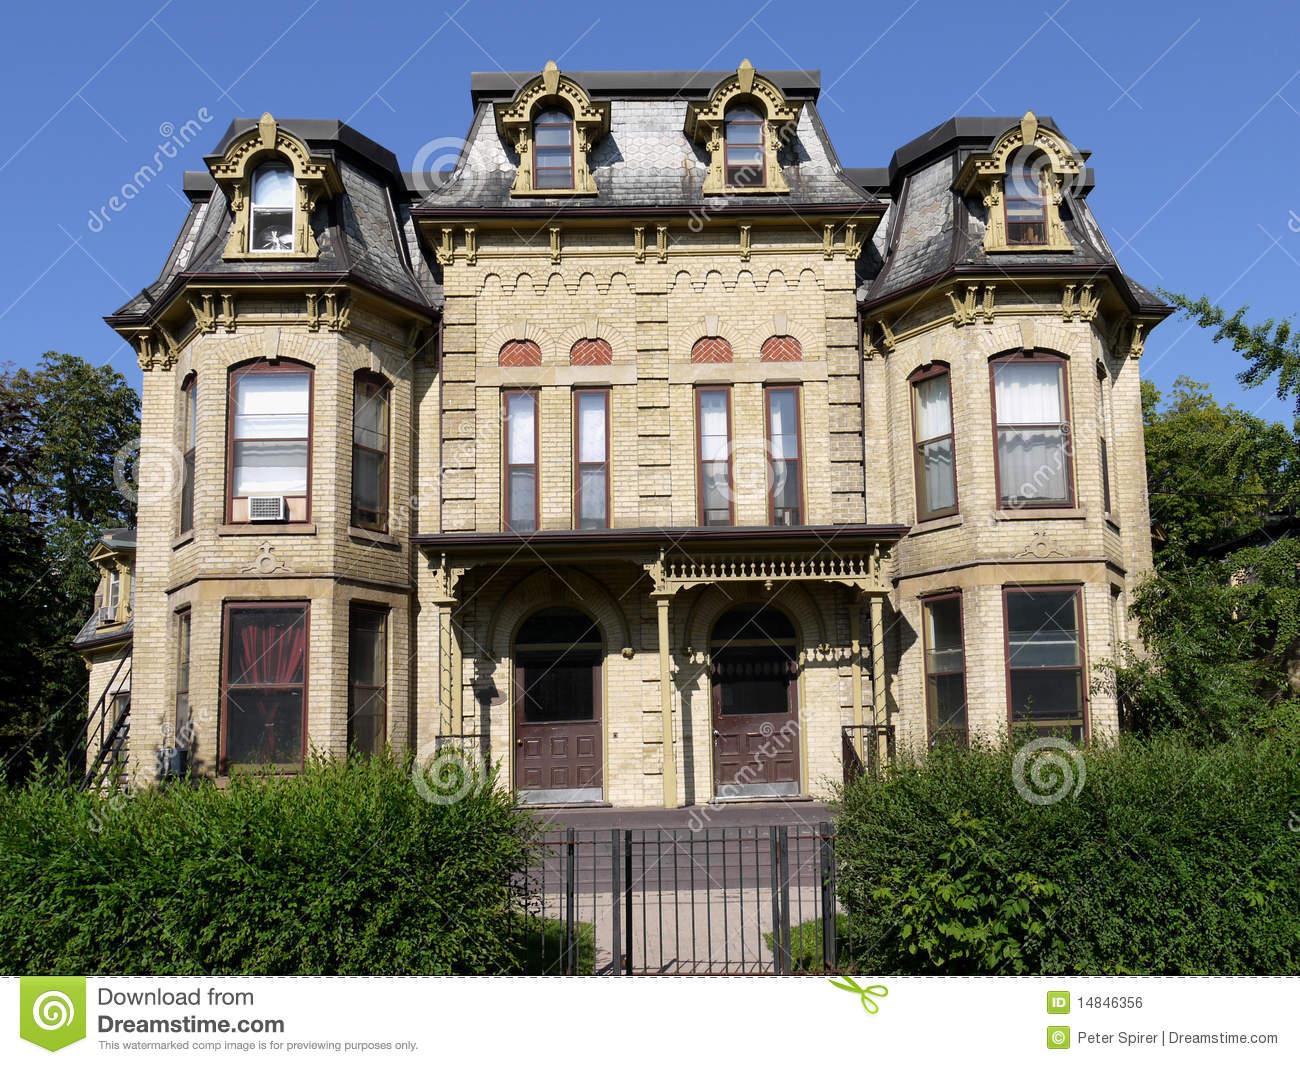 Astounding Quaint Old Victorian House Royalty Free Stock Image Image 14846356 Largest Home Design Picture Inspirations Pitcheantrous